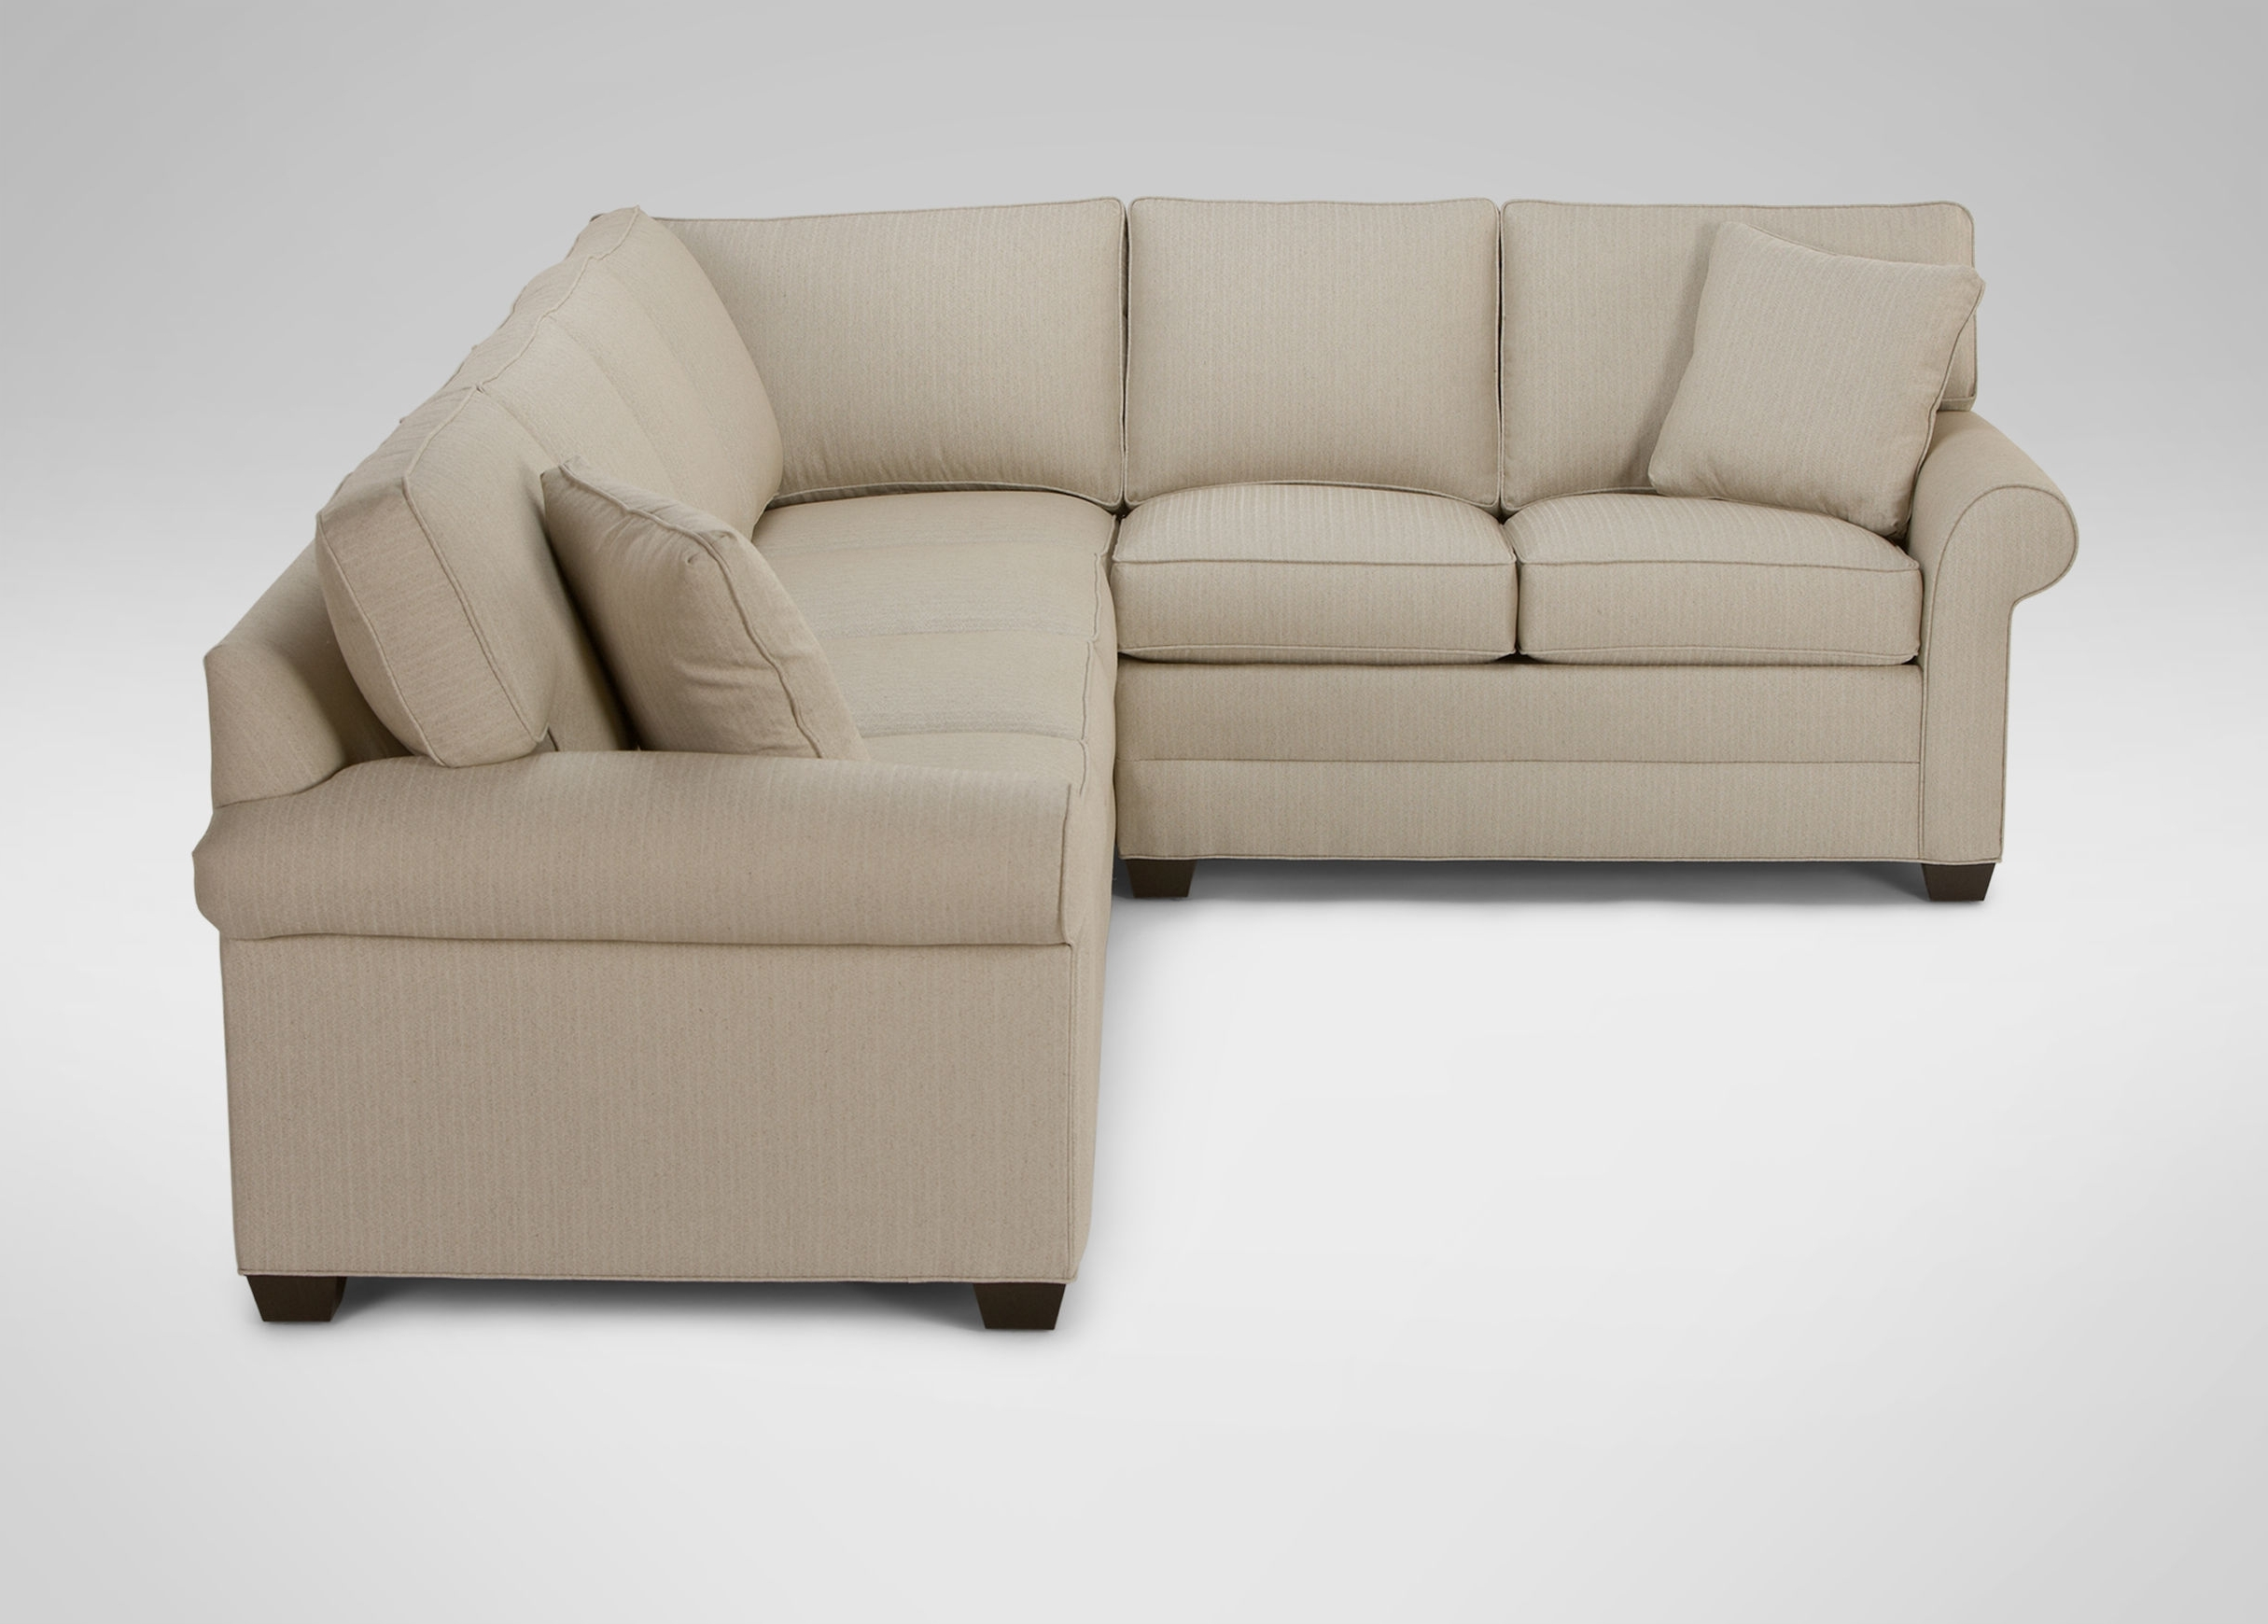 Sectional Sofa Design: Best Ethan Allen Sectional Sofa Ever Ethan With Regard To Trendy Sectional Sofas At Ethan Allen (View 15 of 15)